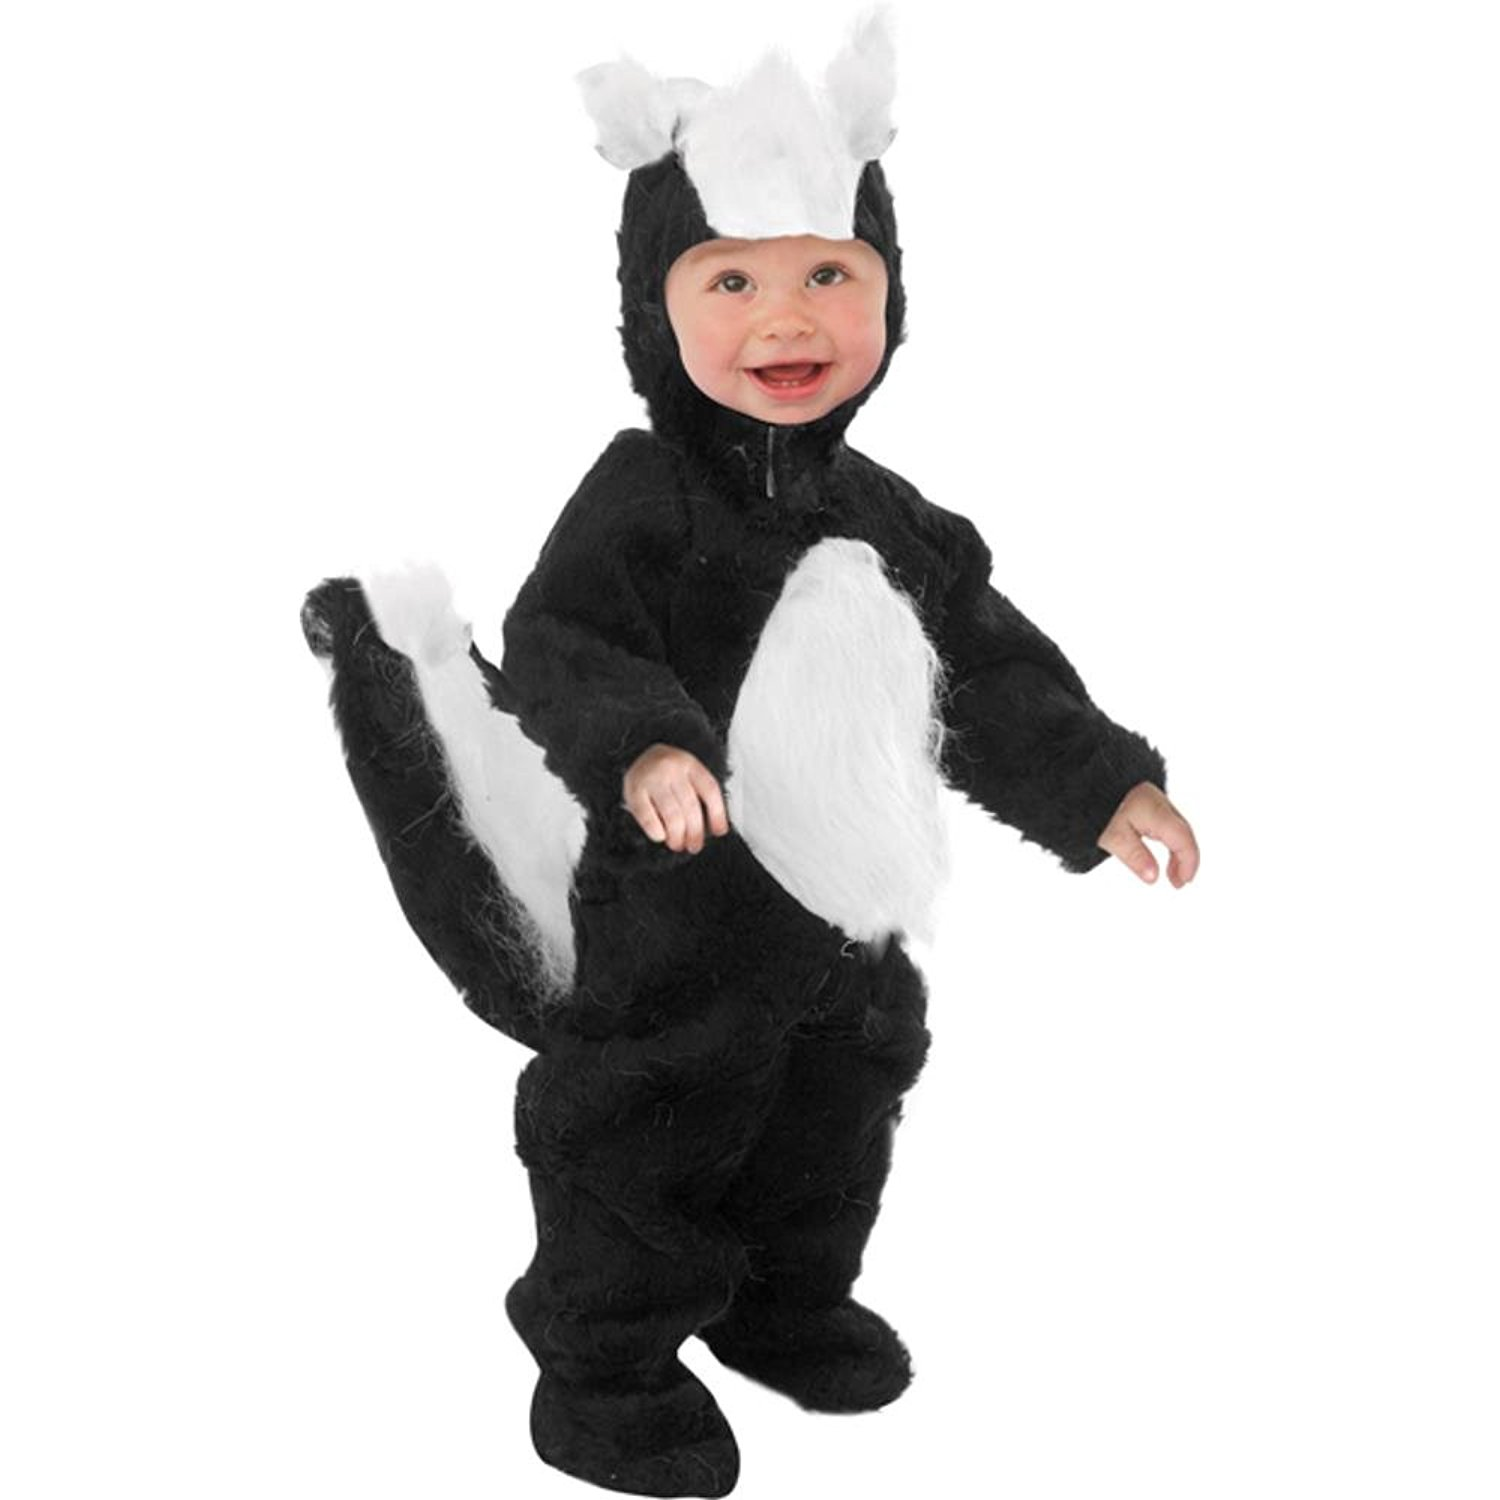 cheap skunk baby costume, find skunk baby costume deals on line at